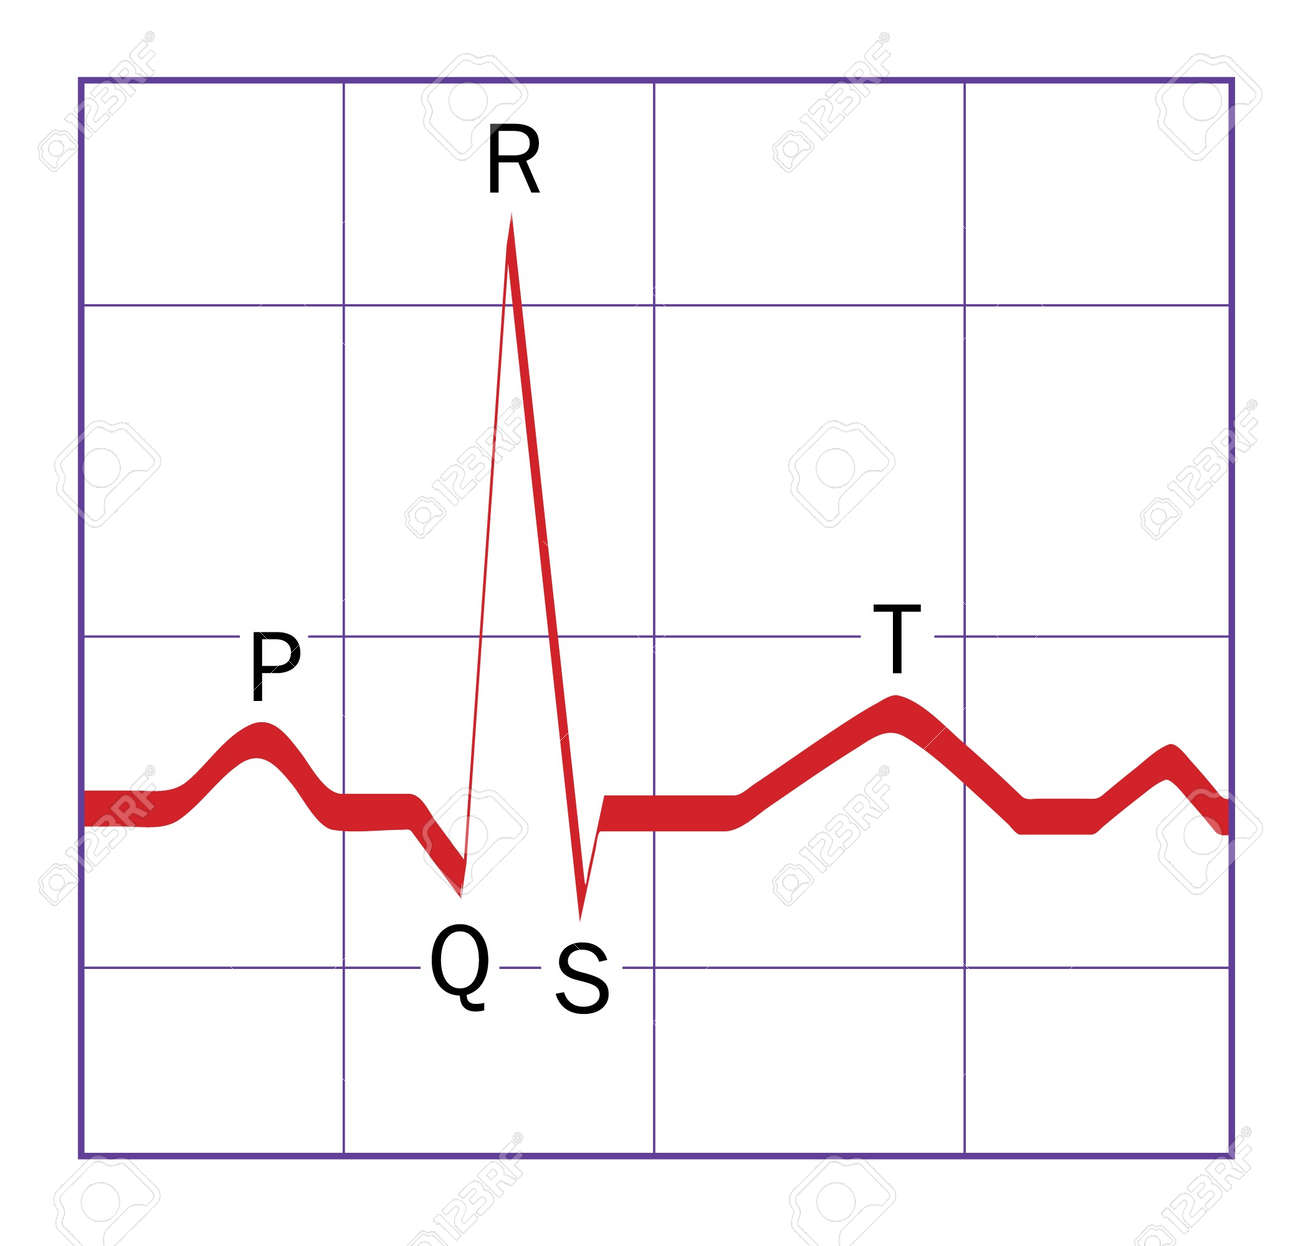 labeled ekg diagram wiring jvc car stereo a typical ideal stylized heart qrs ecg trace with the p q r